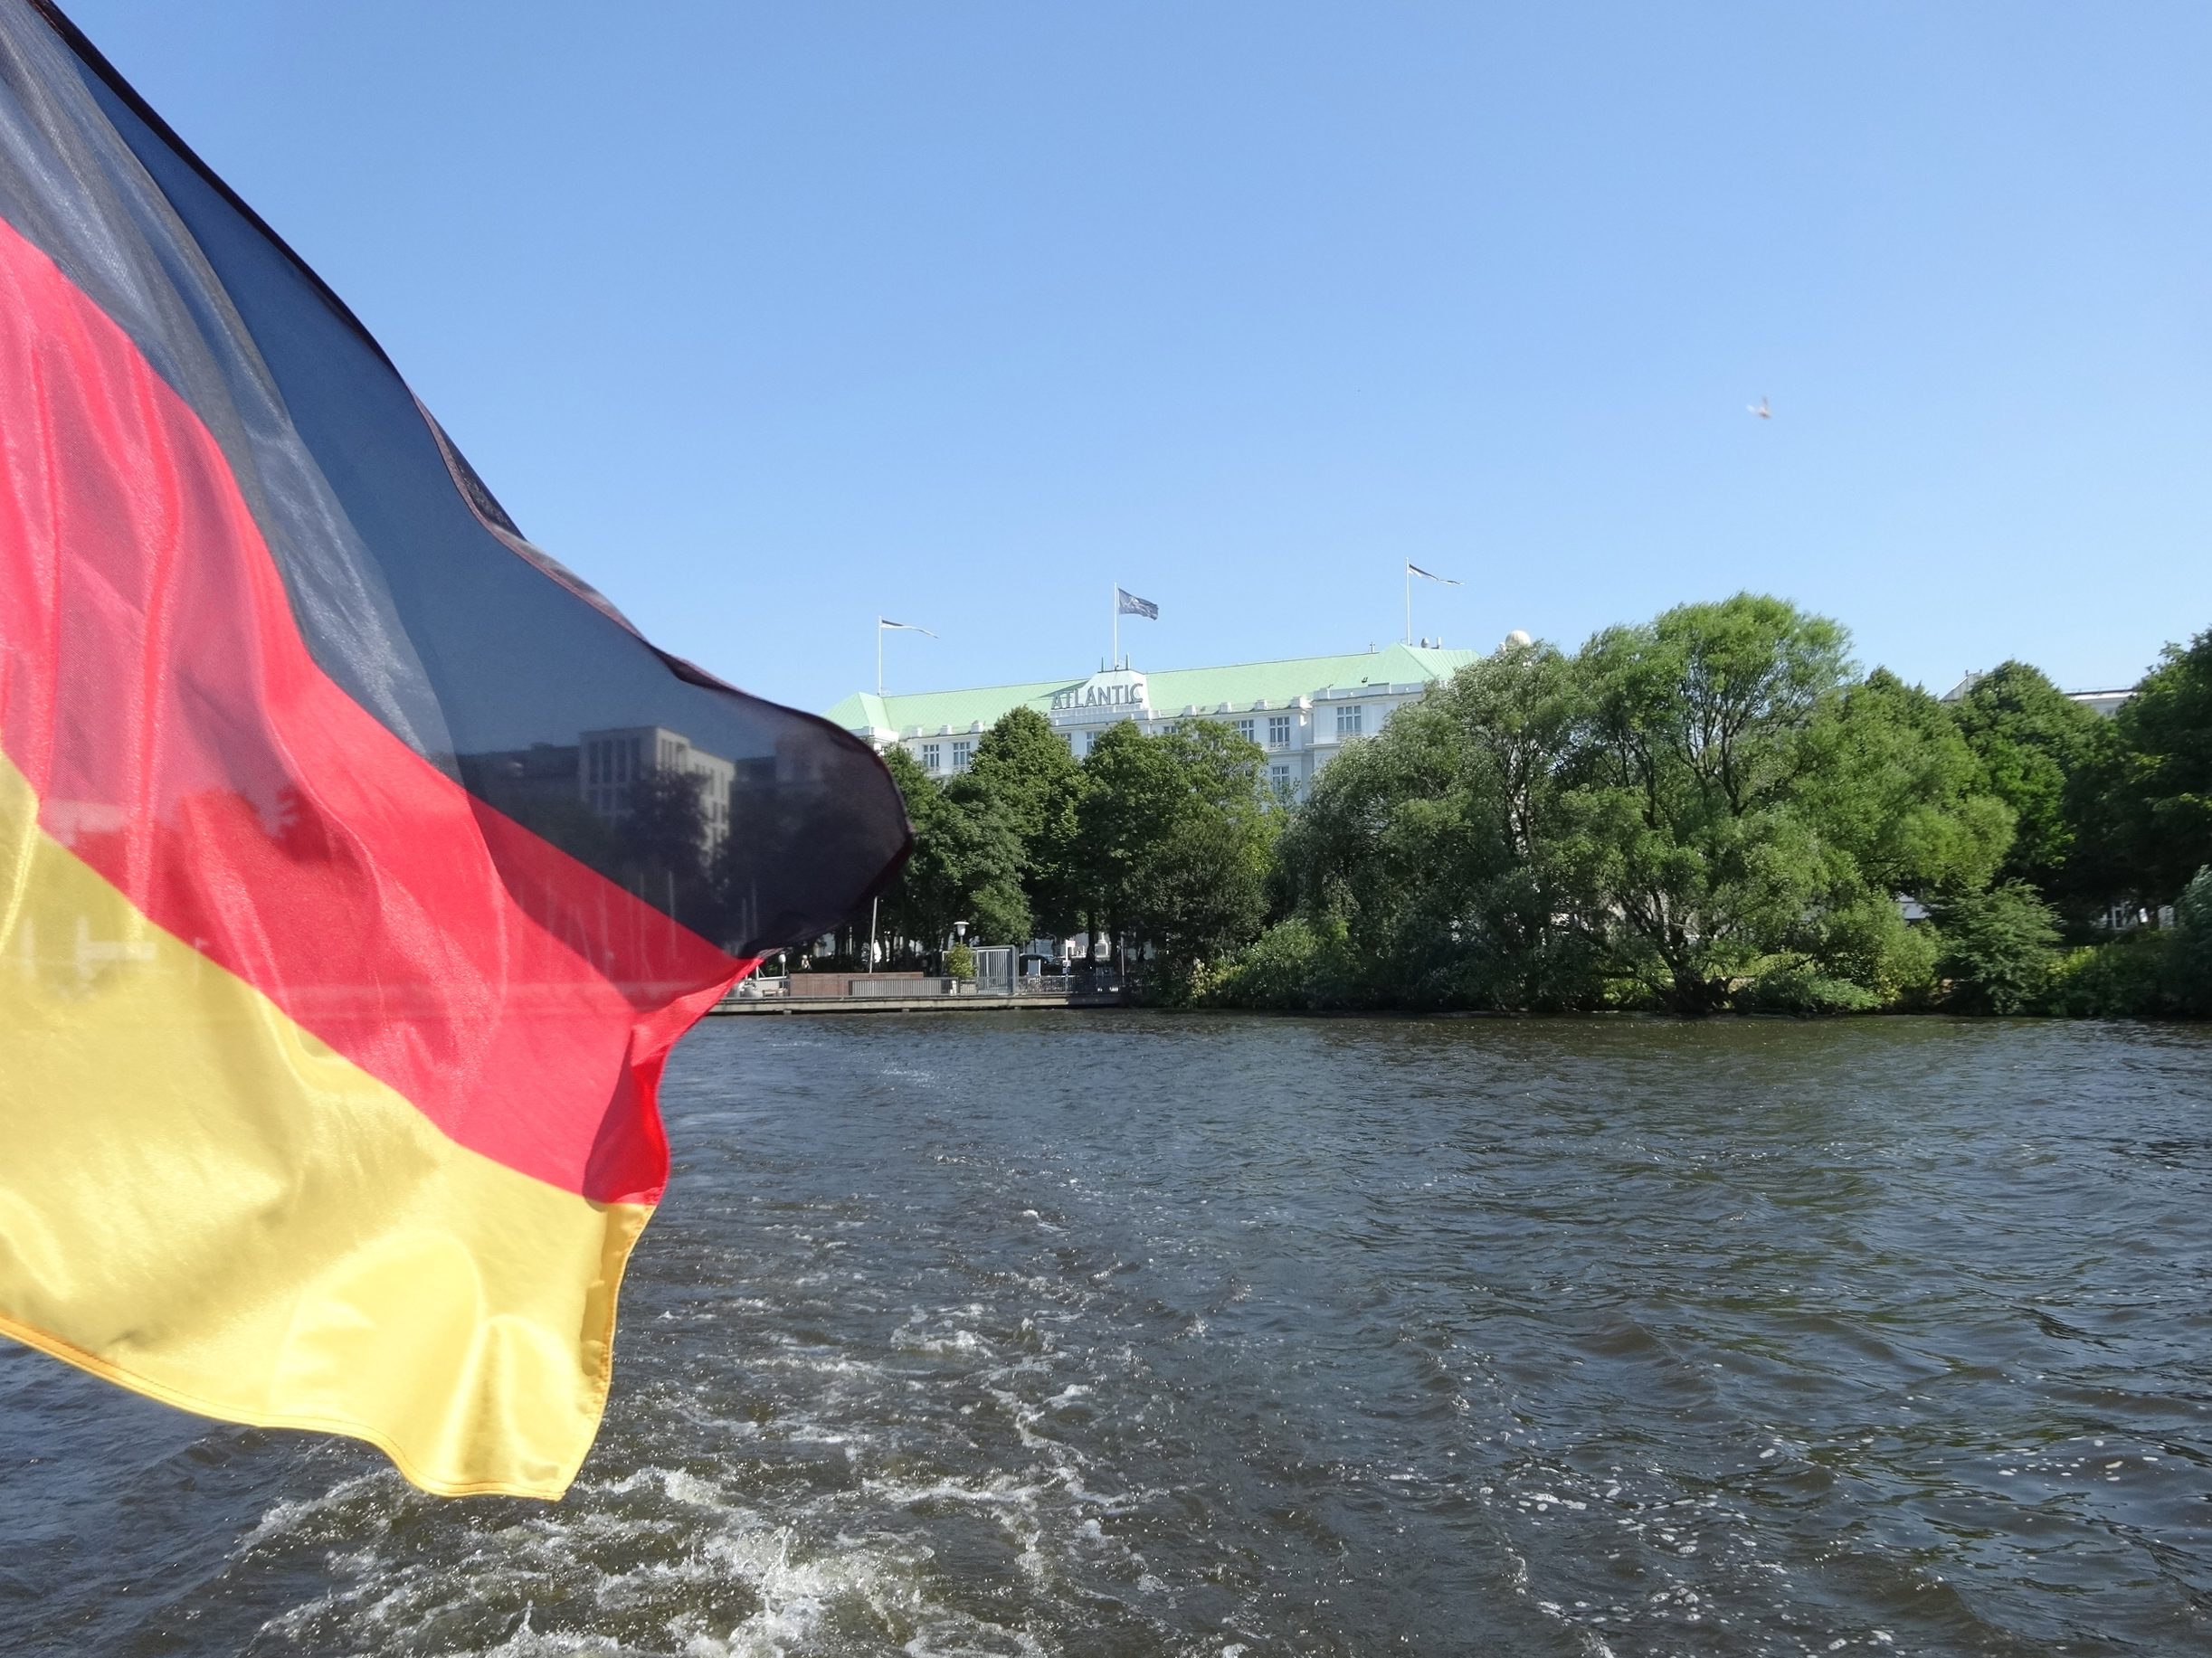 Leaving the outer Alster / die Aussenalster verlassend